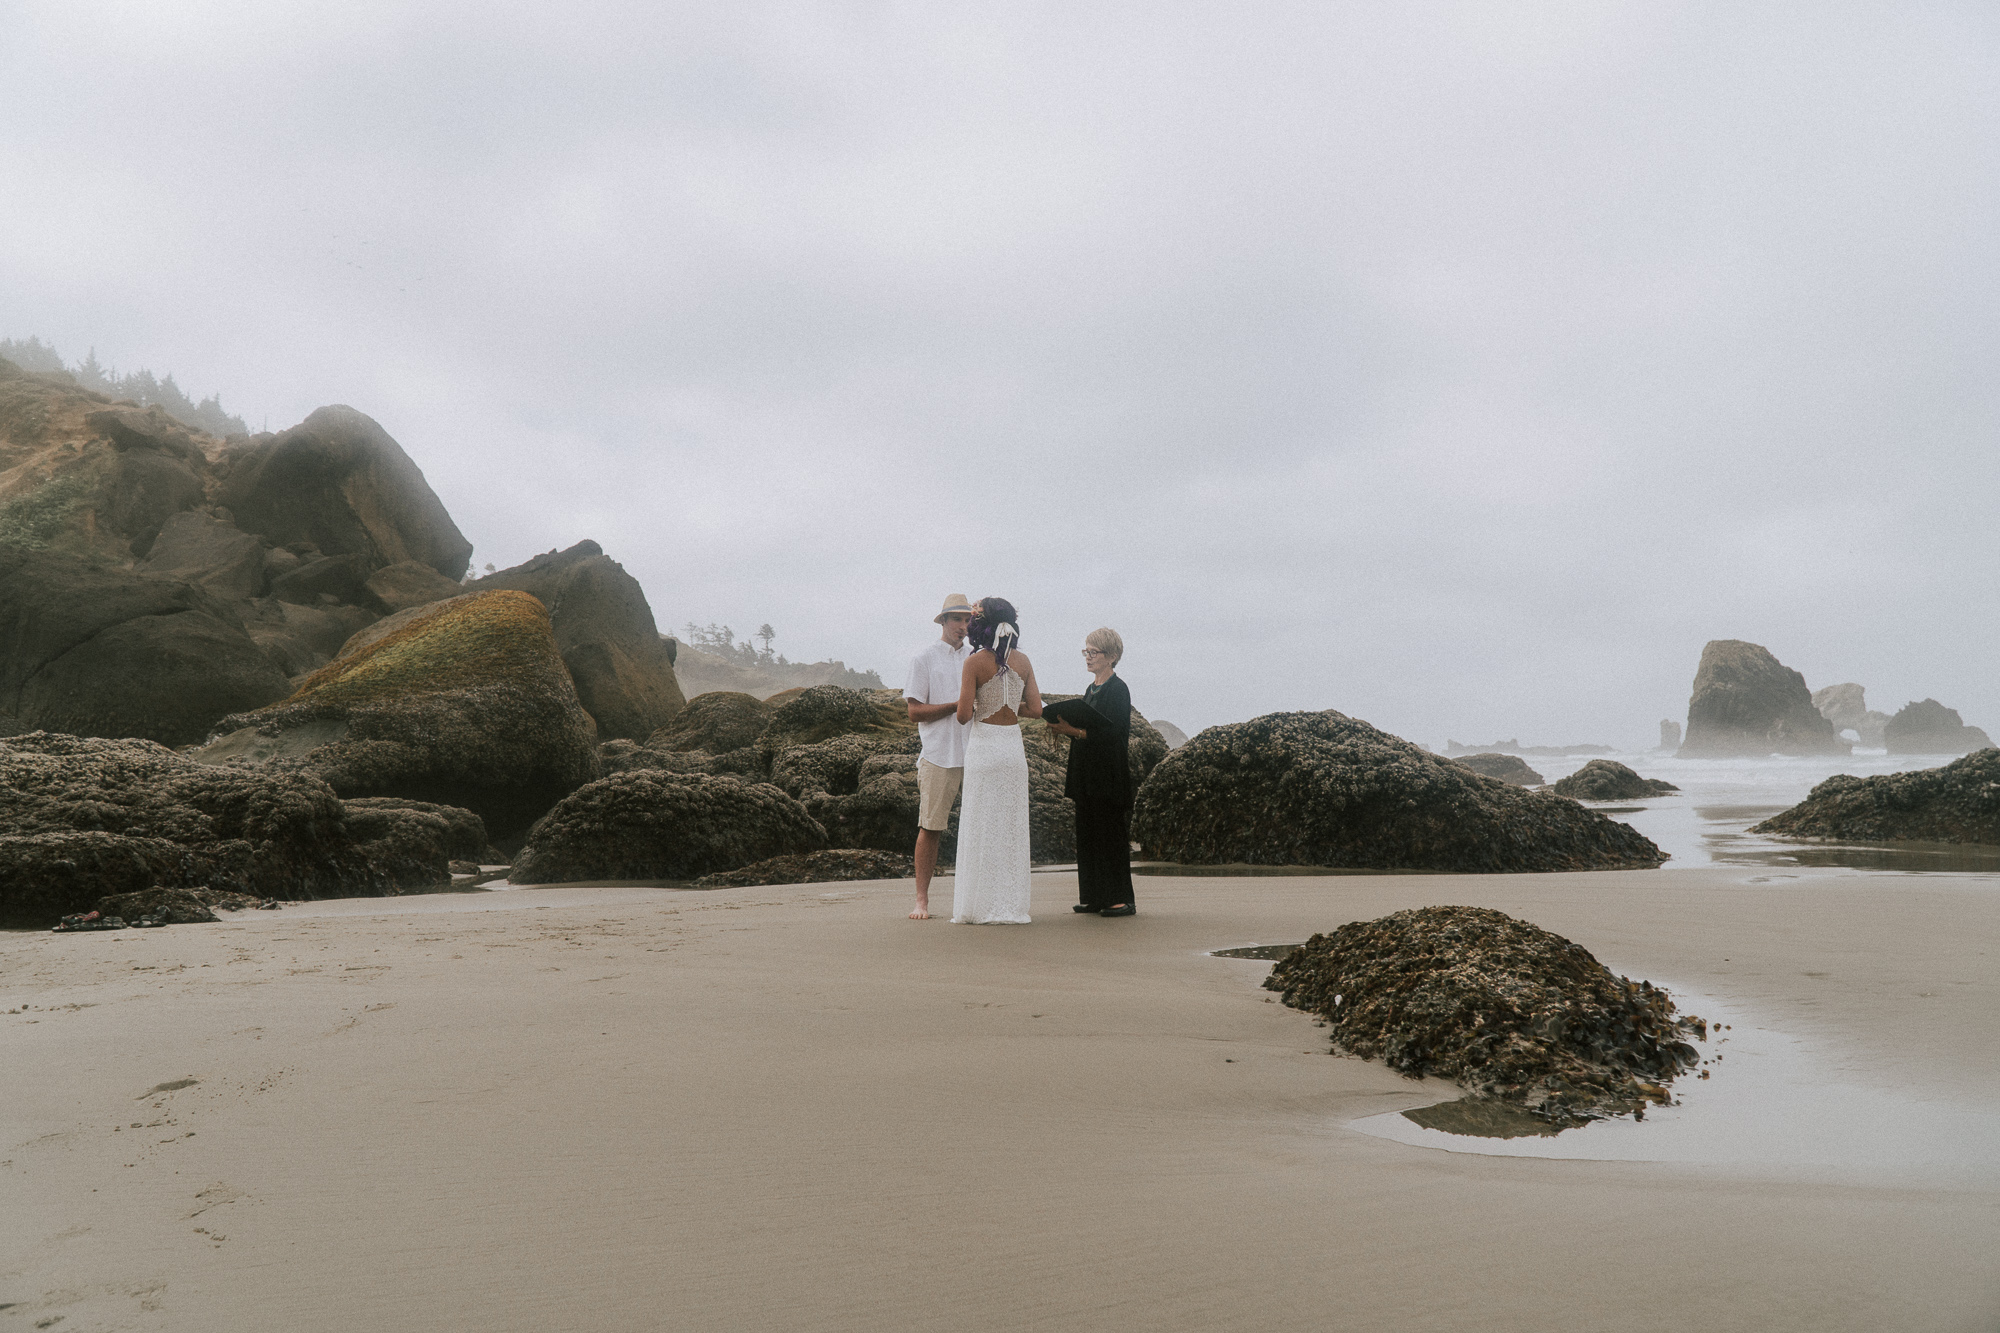 Kenton + Alexis - A Coastal Elopement